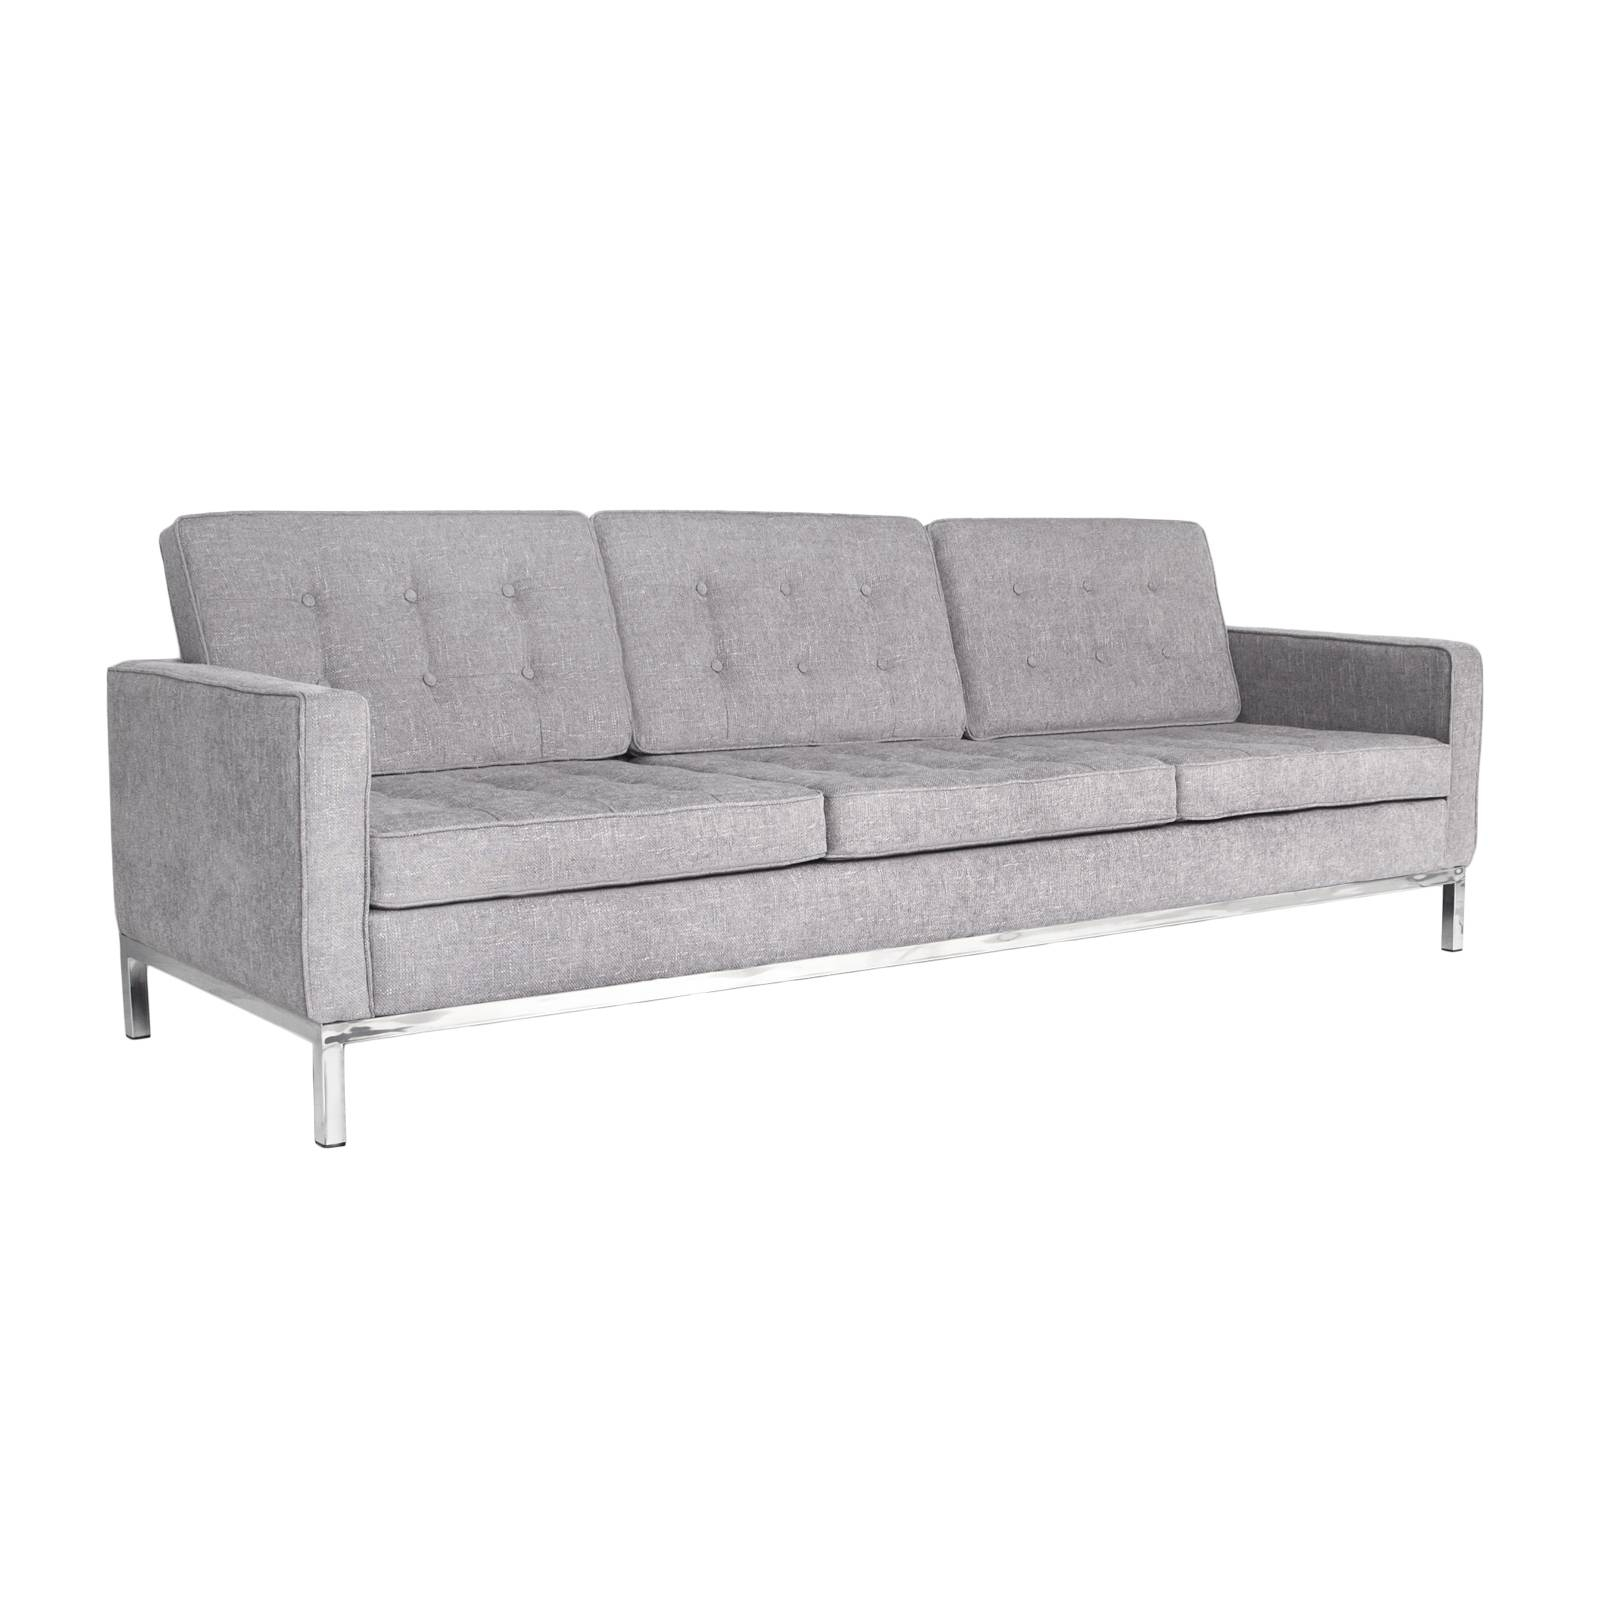 Florence Knoll Sofa Rentals | Event Furniture Rental | Delivery in Florence Knoll Wood Legs Sofas (Image 10 of 25)